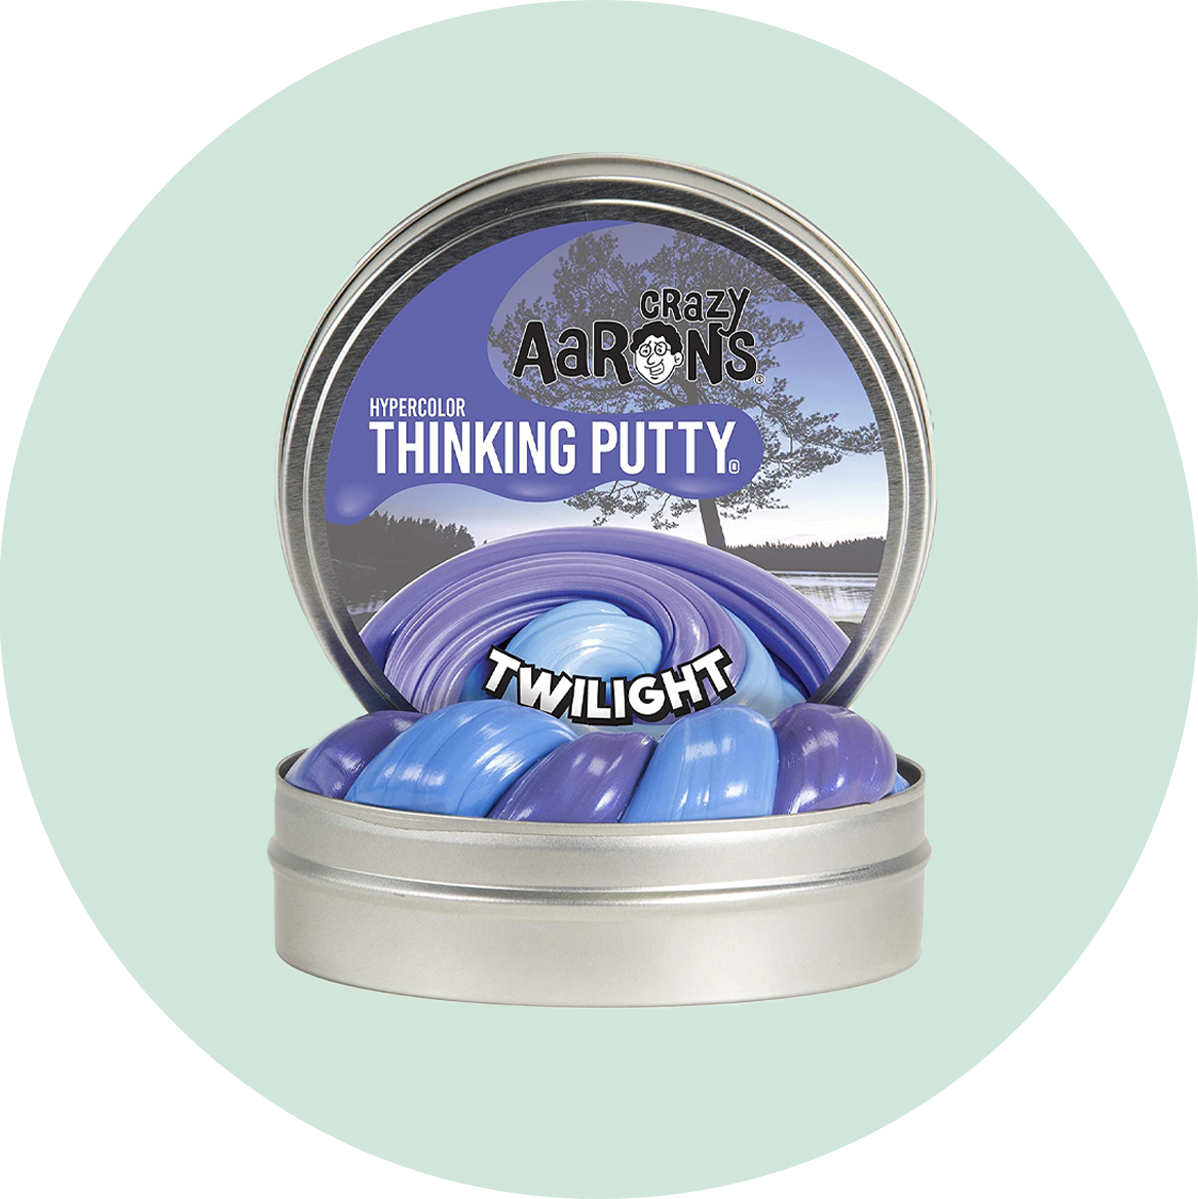 Crazy Aaron's Mini Hypercolor Thinking Putty